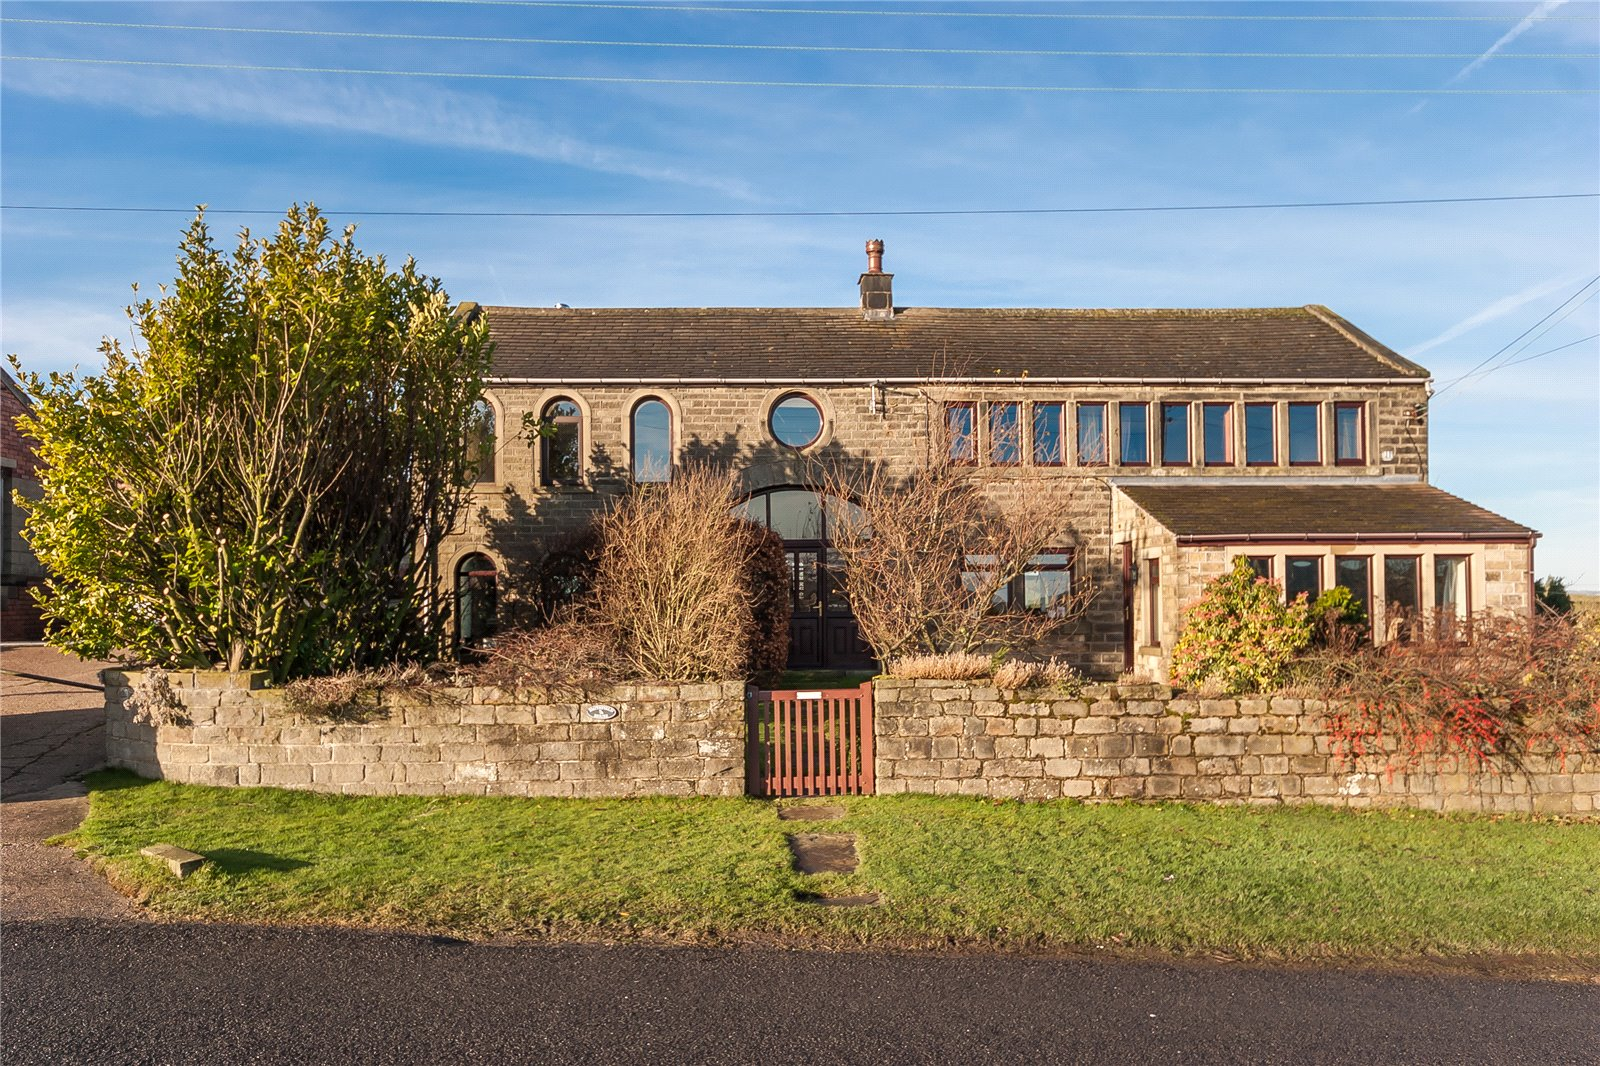 4 Bedrooms House for sale in Scholes Moor Road, Scholes, Holmfirth, HD9